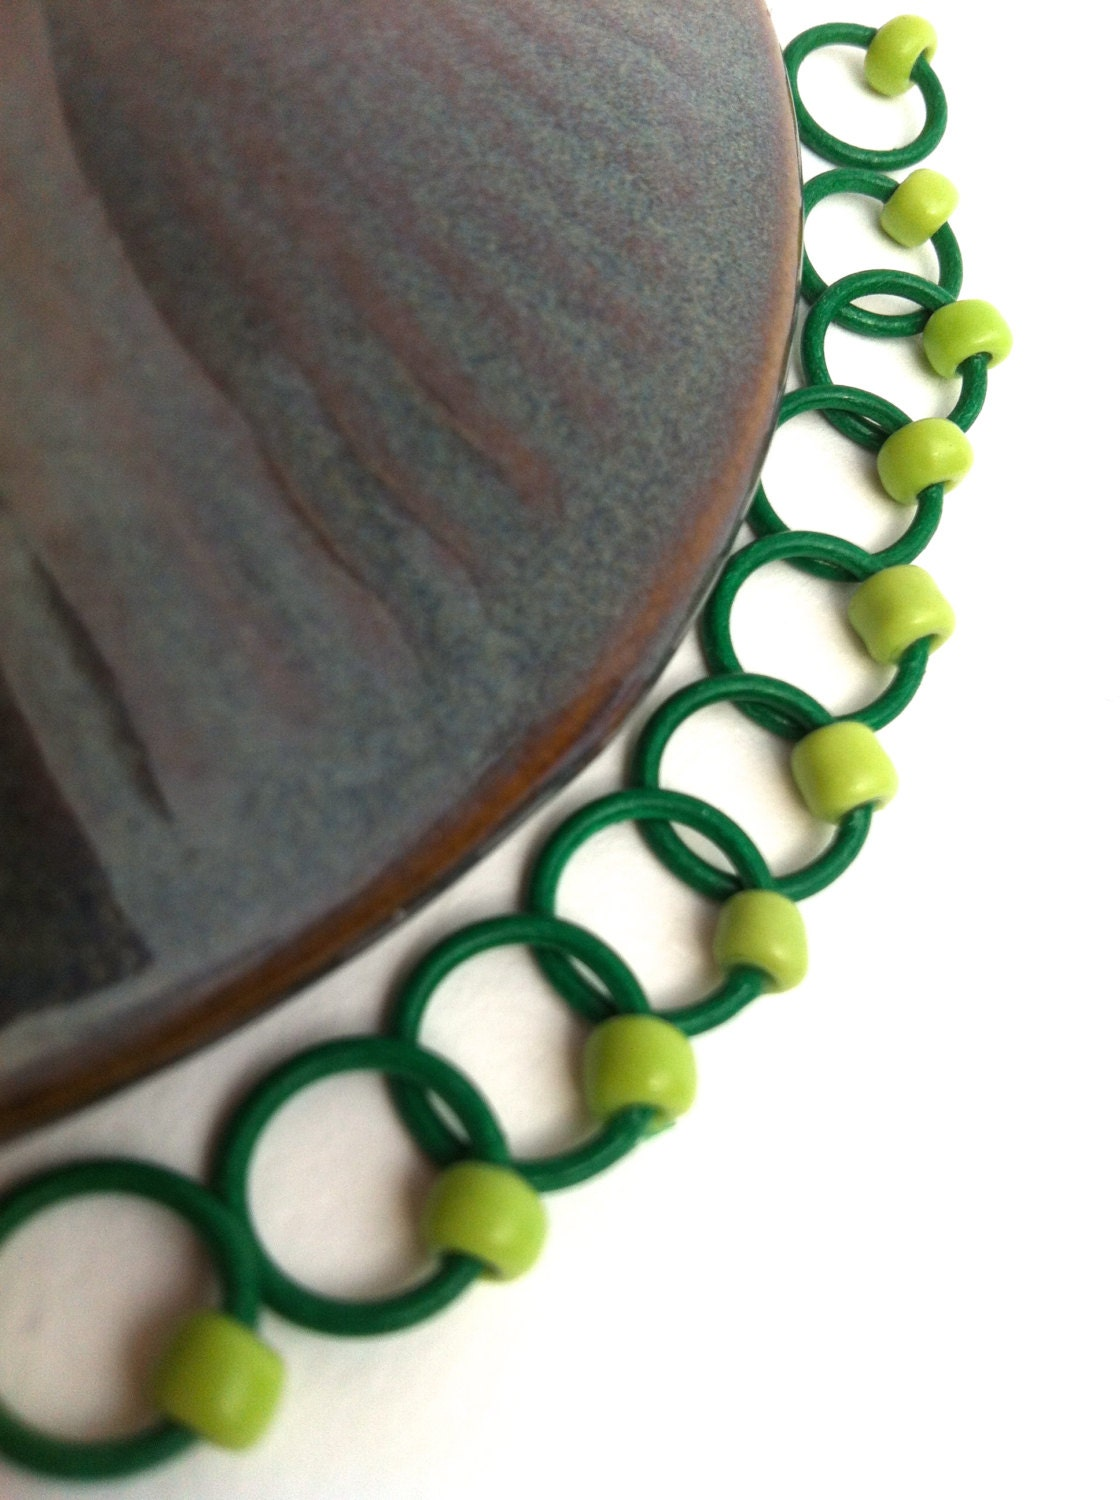 Snag Free ring stitch markers/knitting/Orings GREEN by rosyretro